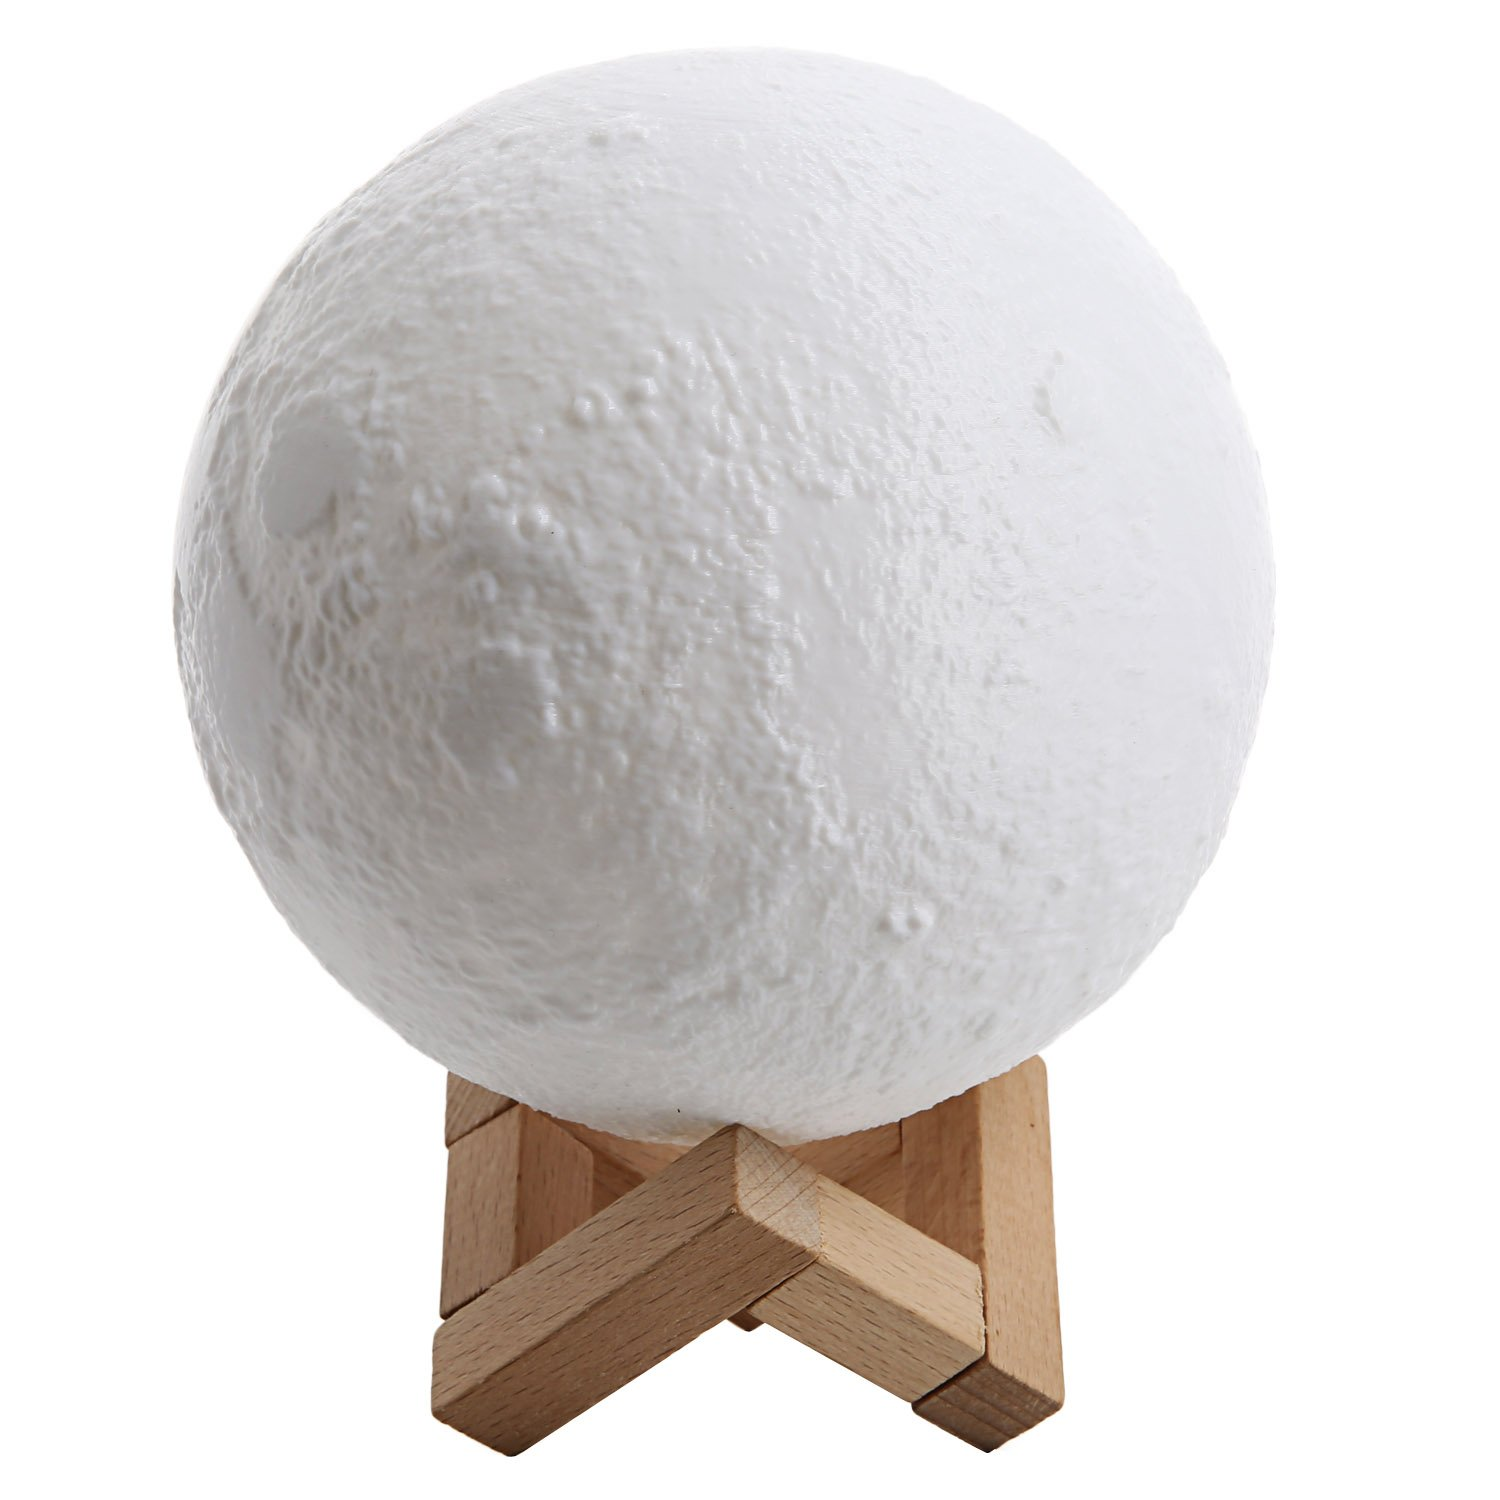 BATHWA Lighting 3D Printing Moon LED Lamp Touch Switch Lunar Night Light Rechargeable and Brightness Adjustable With Wooden Mount 5.9 Inch White